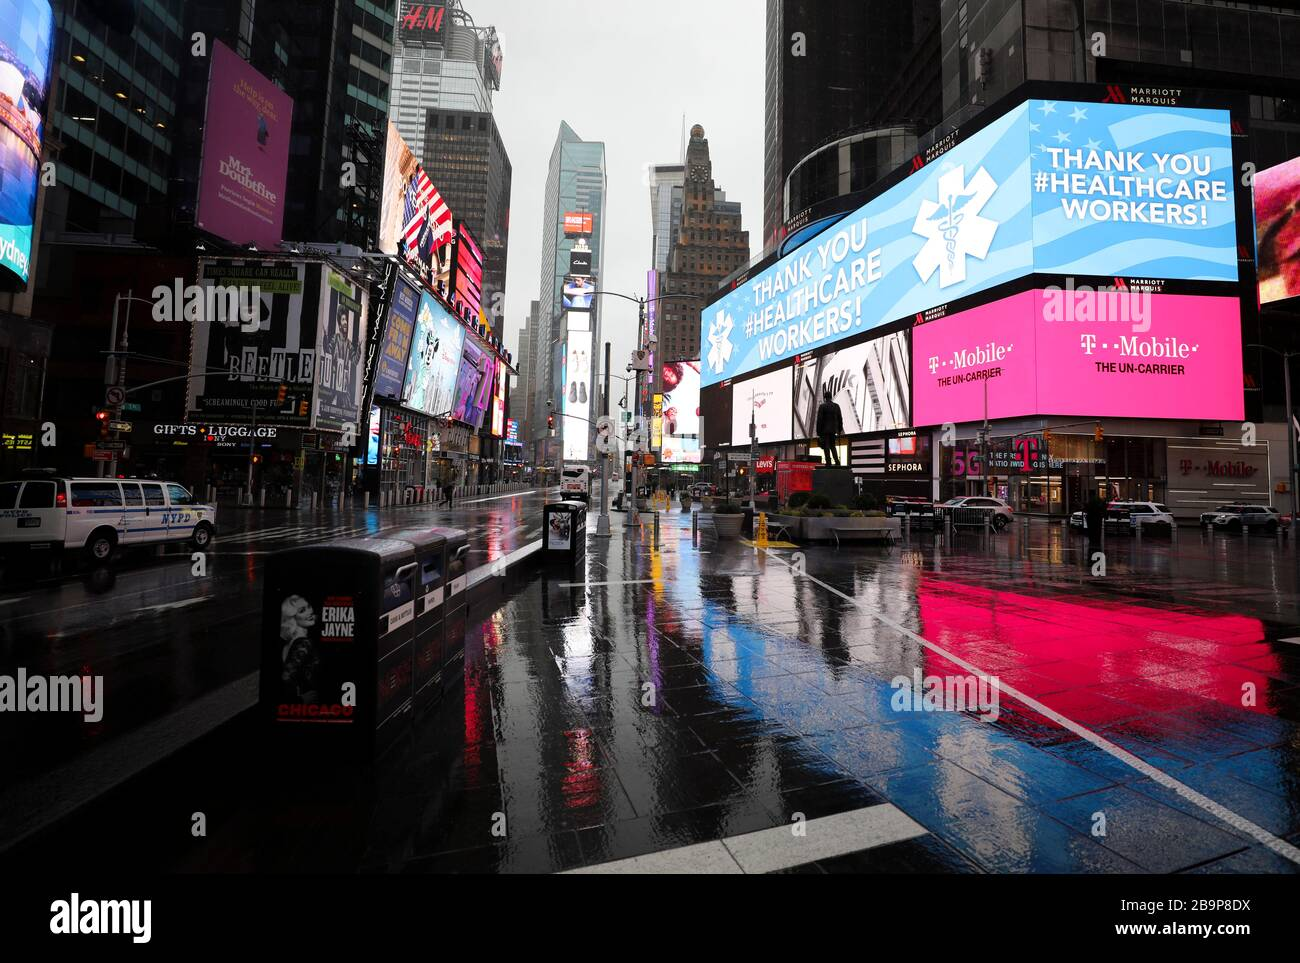 (200325) -- BEIJING, March 25, 2020 (Xinhua) -- Photo taken on March 23, 2020 shows the empty Times Square in New York, the United States. The number of confirmed COVID-19 cases in New York City has reached 13,119 as of Monday night local time, according to data of the Center for Systems Science and Engineering (CSSE) at Johns Hopkins University. A total of 124 deaths have been reported in the city, according to the CSSE. The largest U.S. city with a population of 8.6 million has become a new epicenter of the outbreak, taking about 30 percent of the nation's tally of 43,901. (Xinhua/Wan Stock Photo